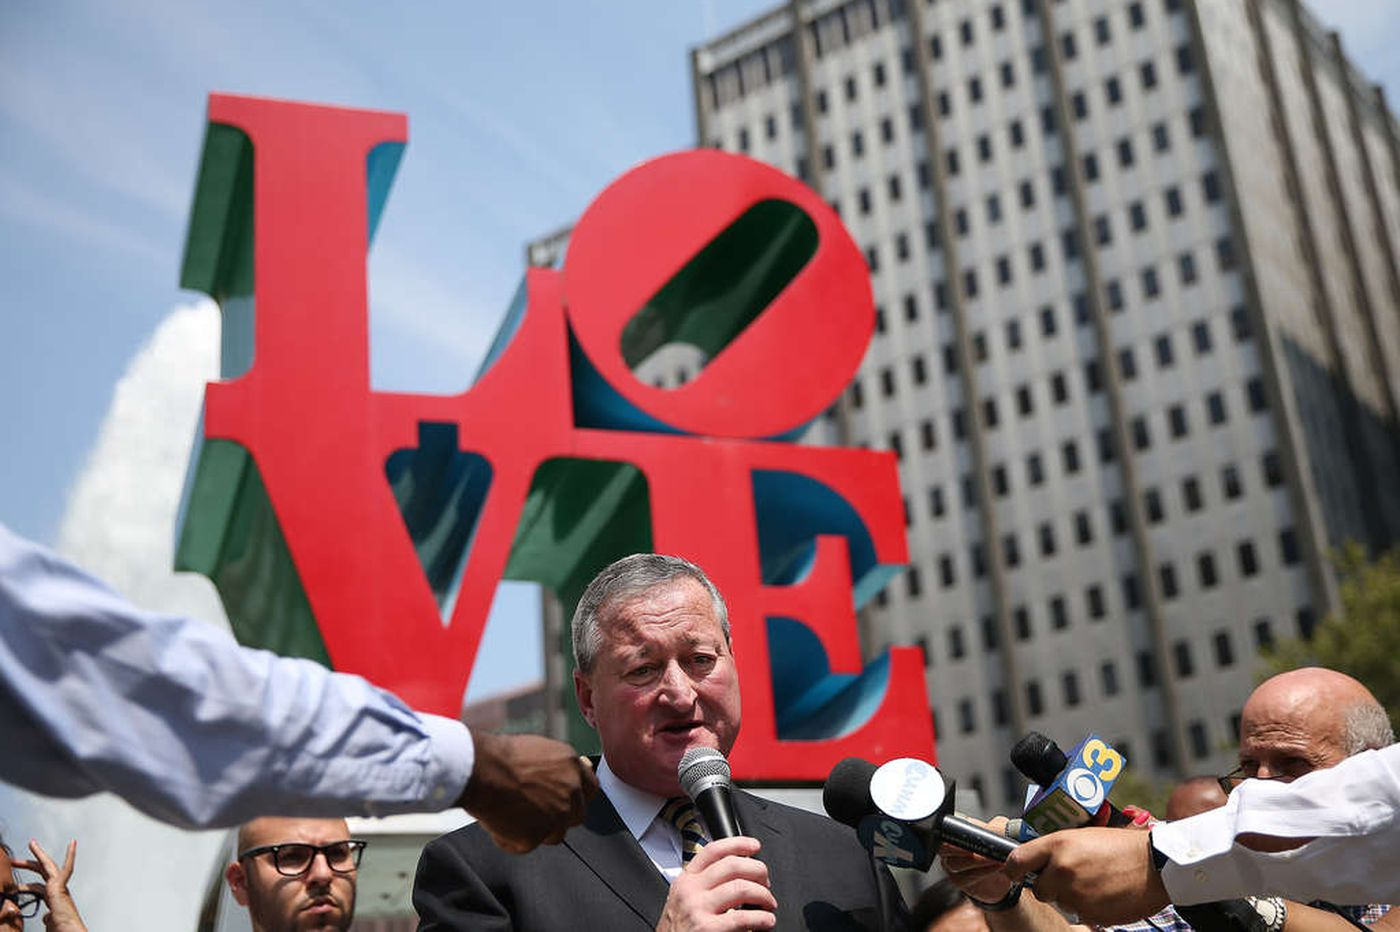 Immigrants are welcome in Pittsburgh and Philadelphia | Opinion